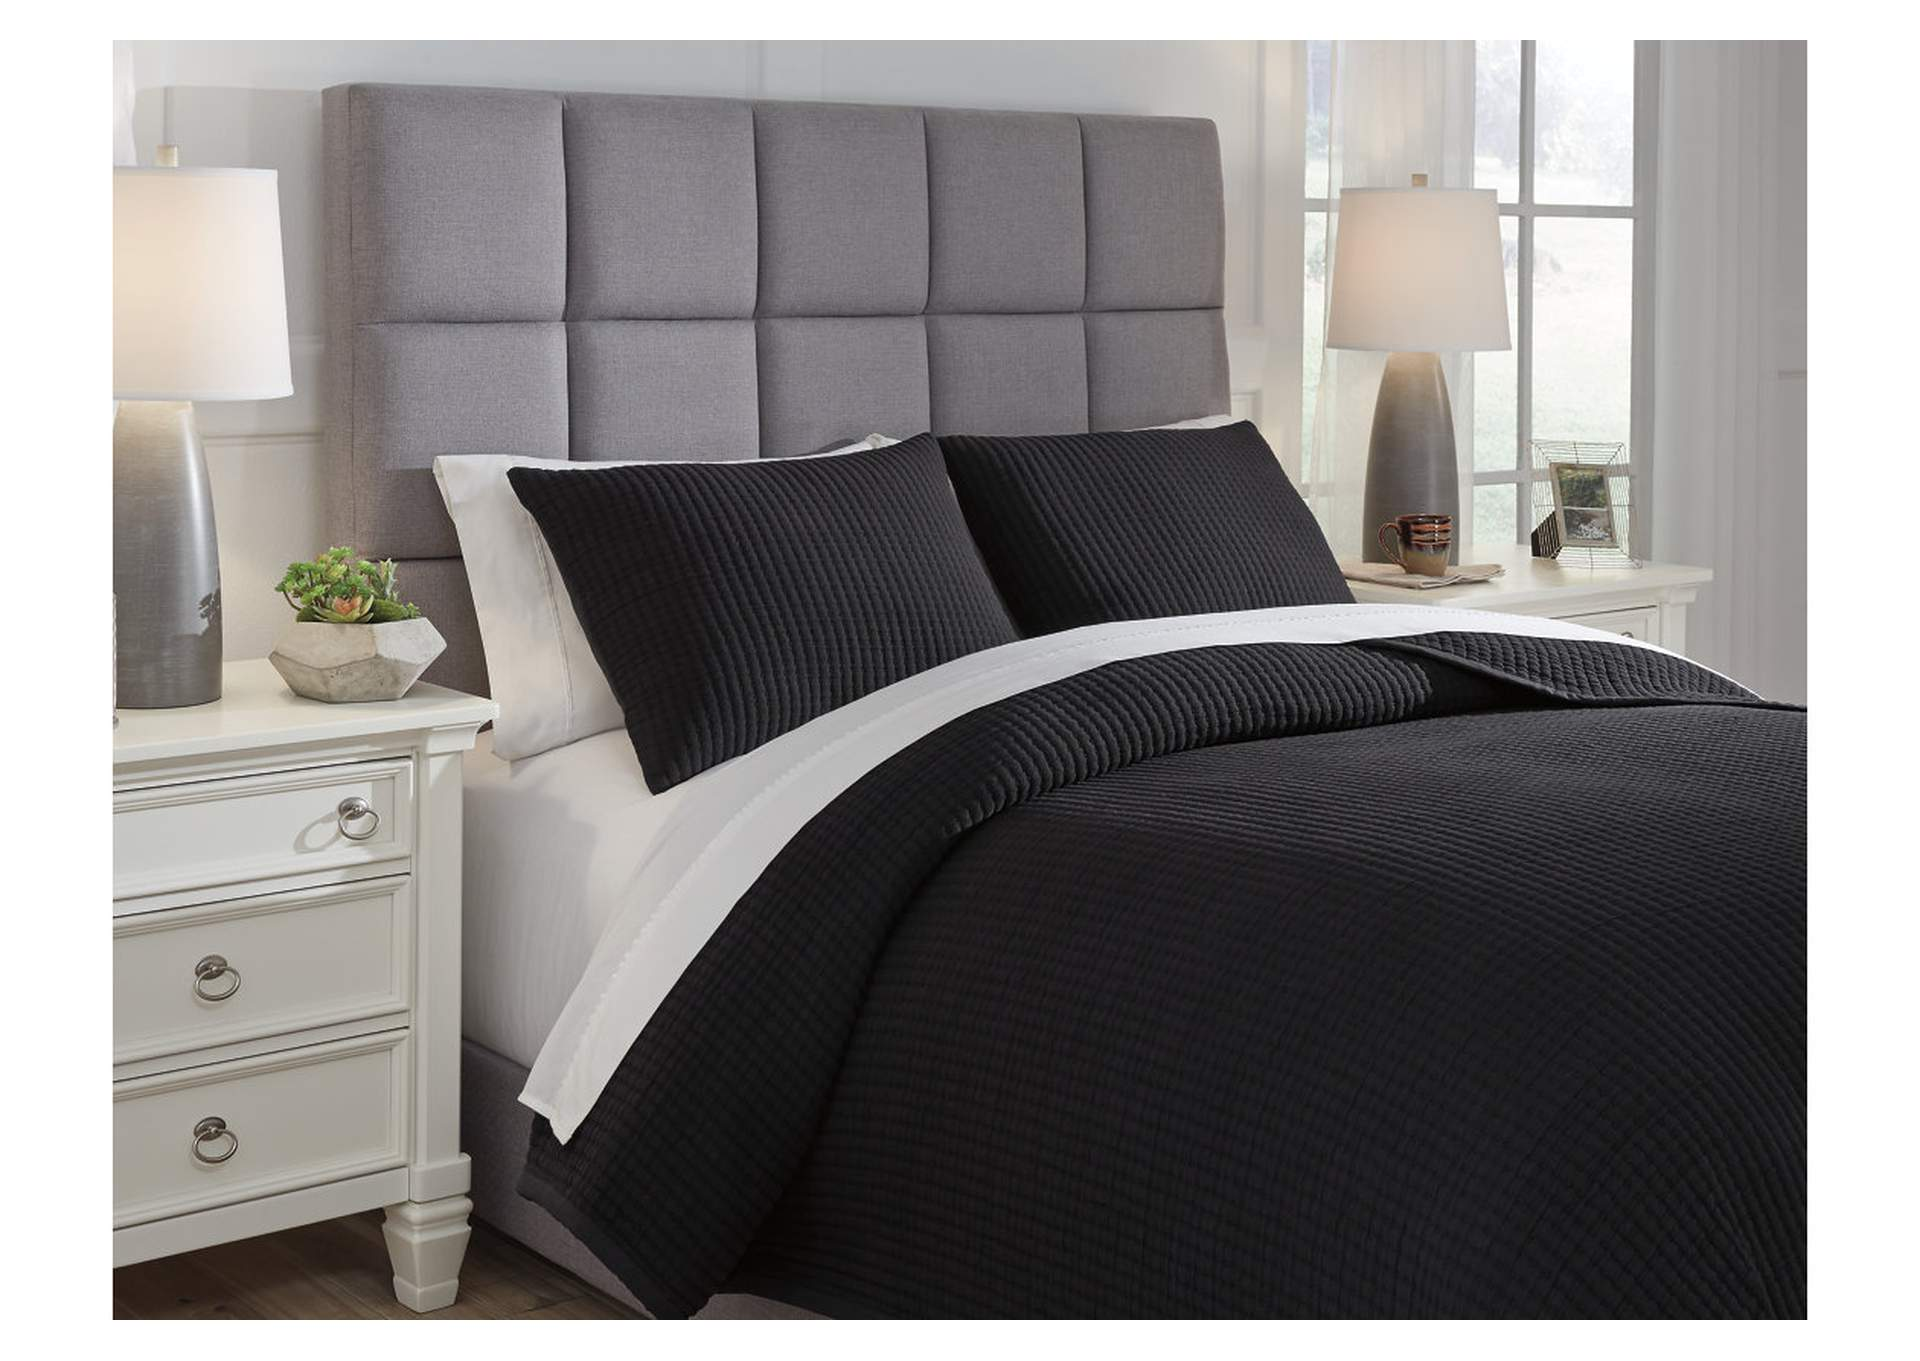 Thornam Black 3-Piece Queen Coverlet Set,Signature Design By Ashley